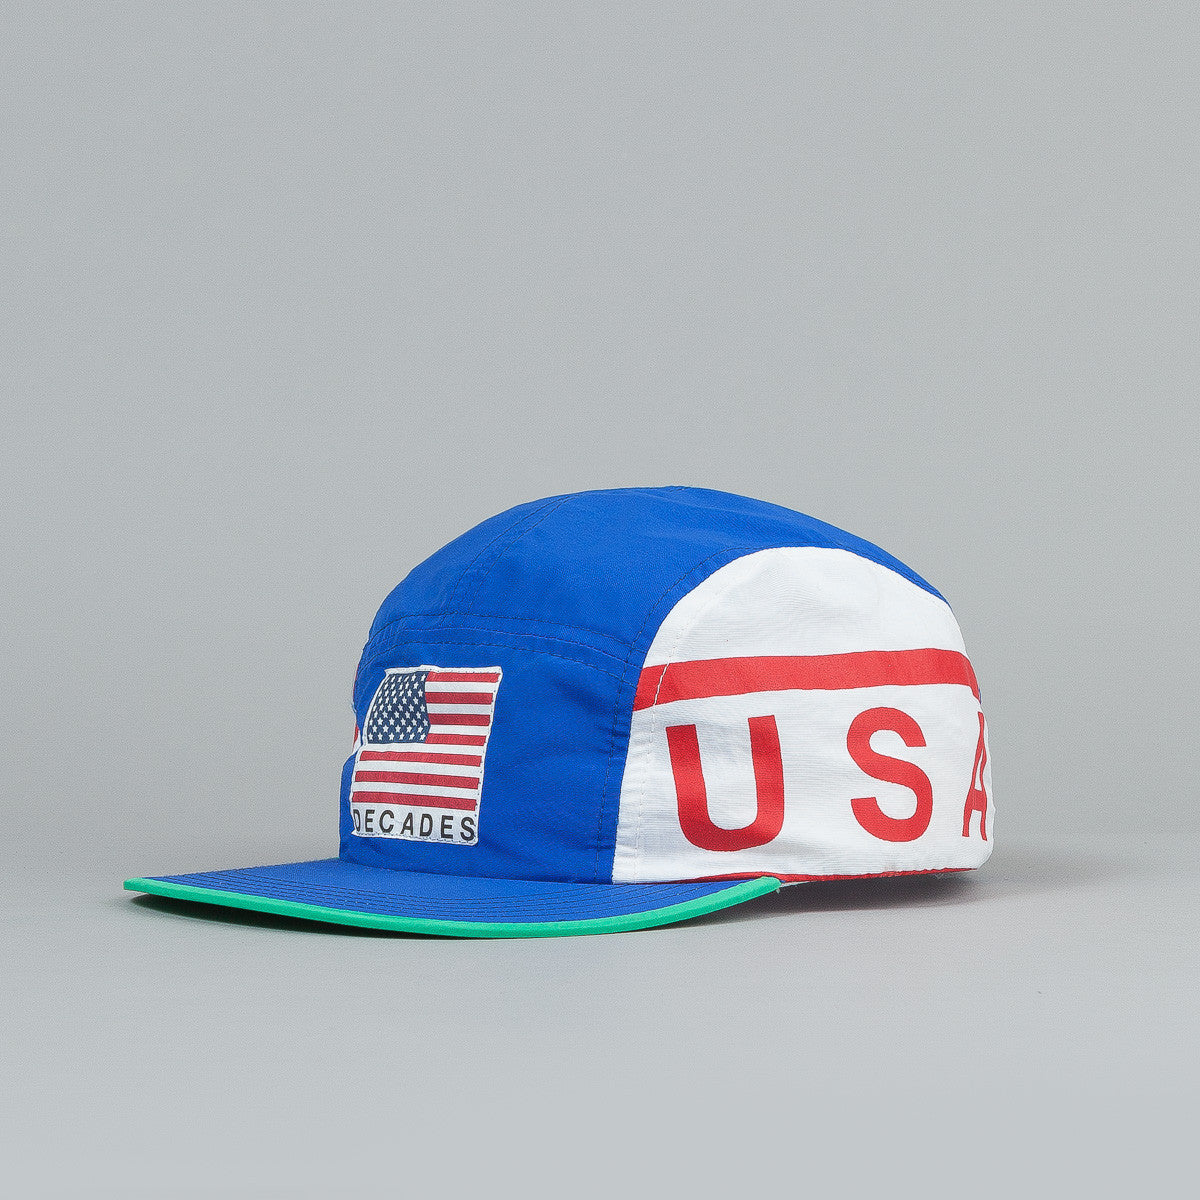 The Decades Team USA 5 Panel Cap